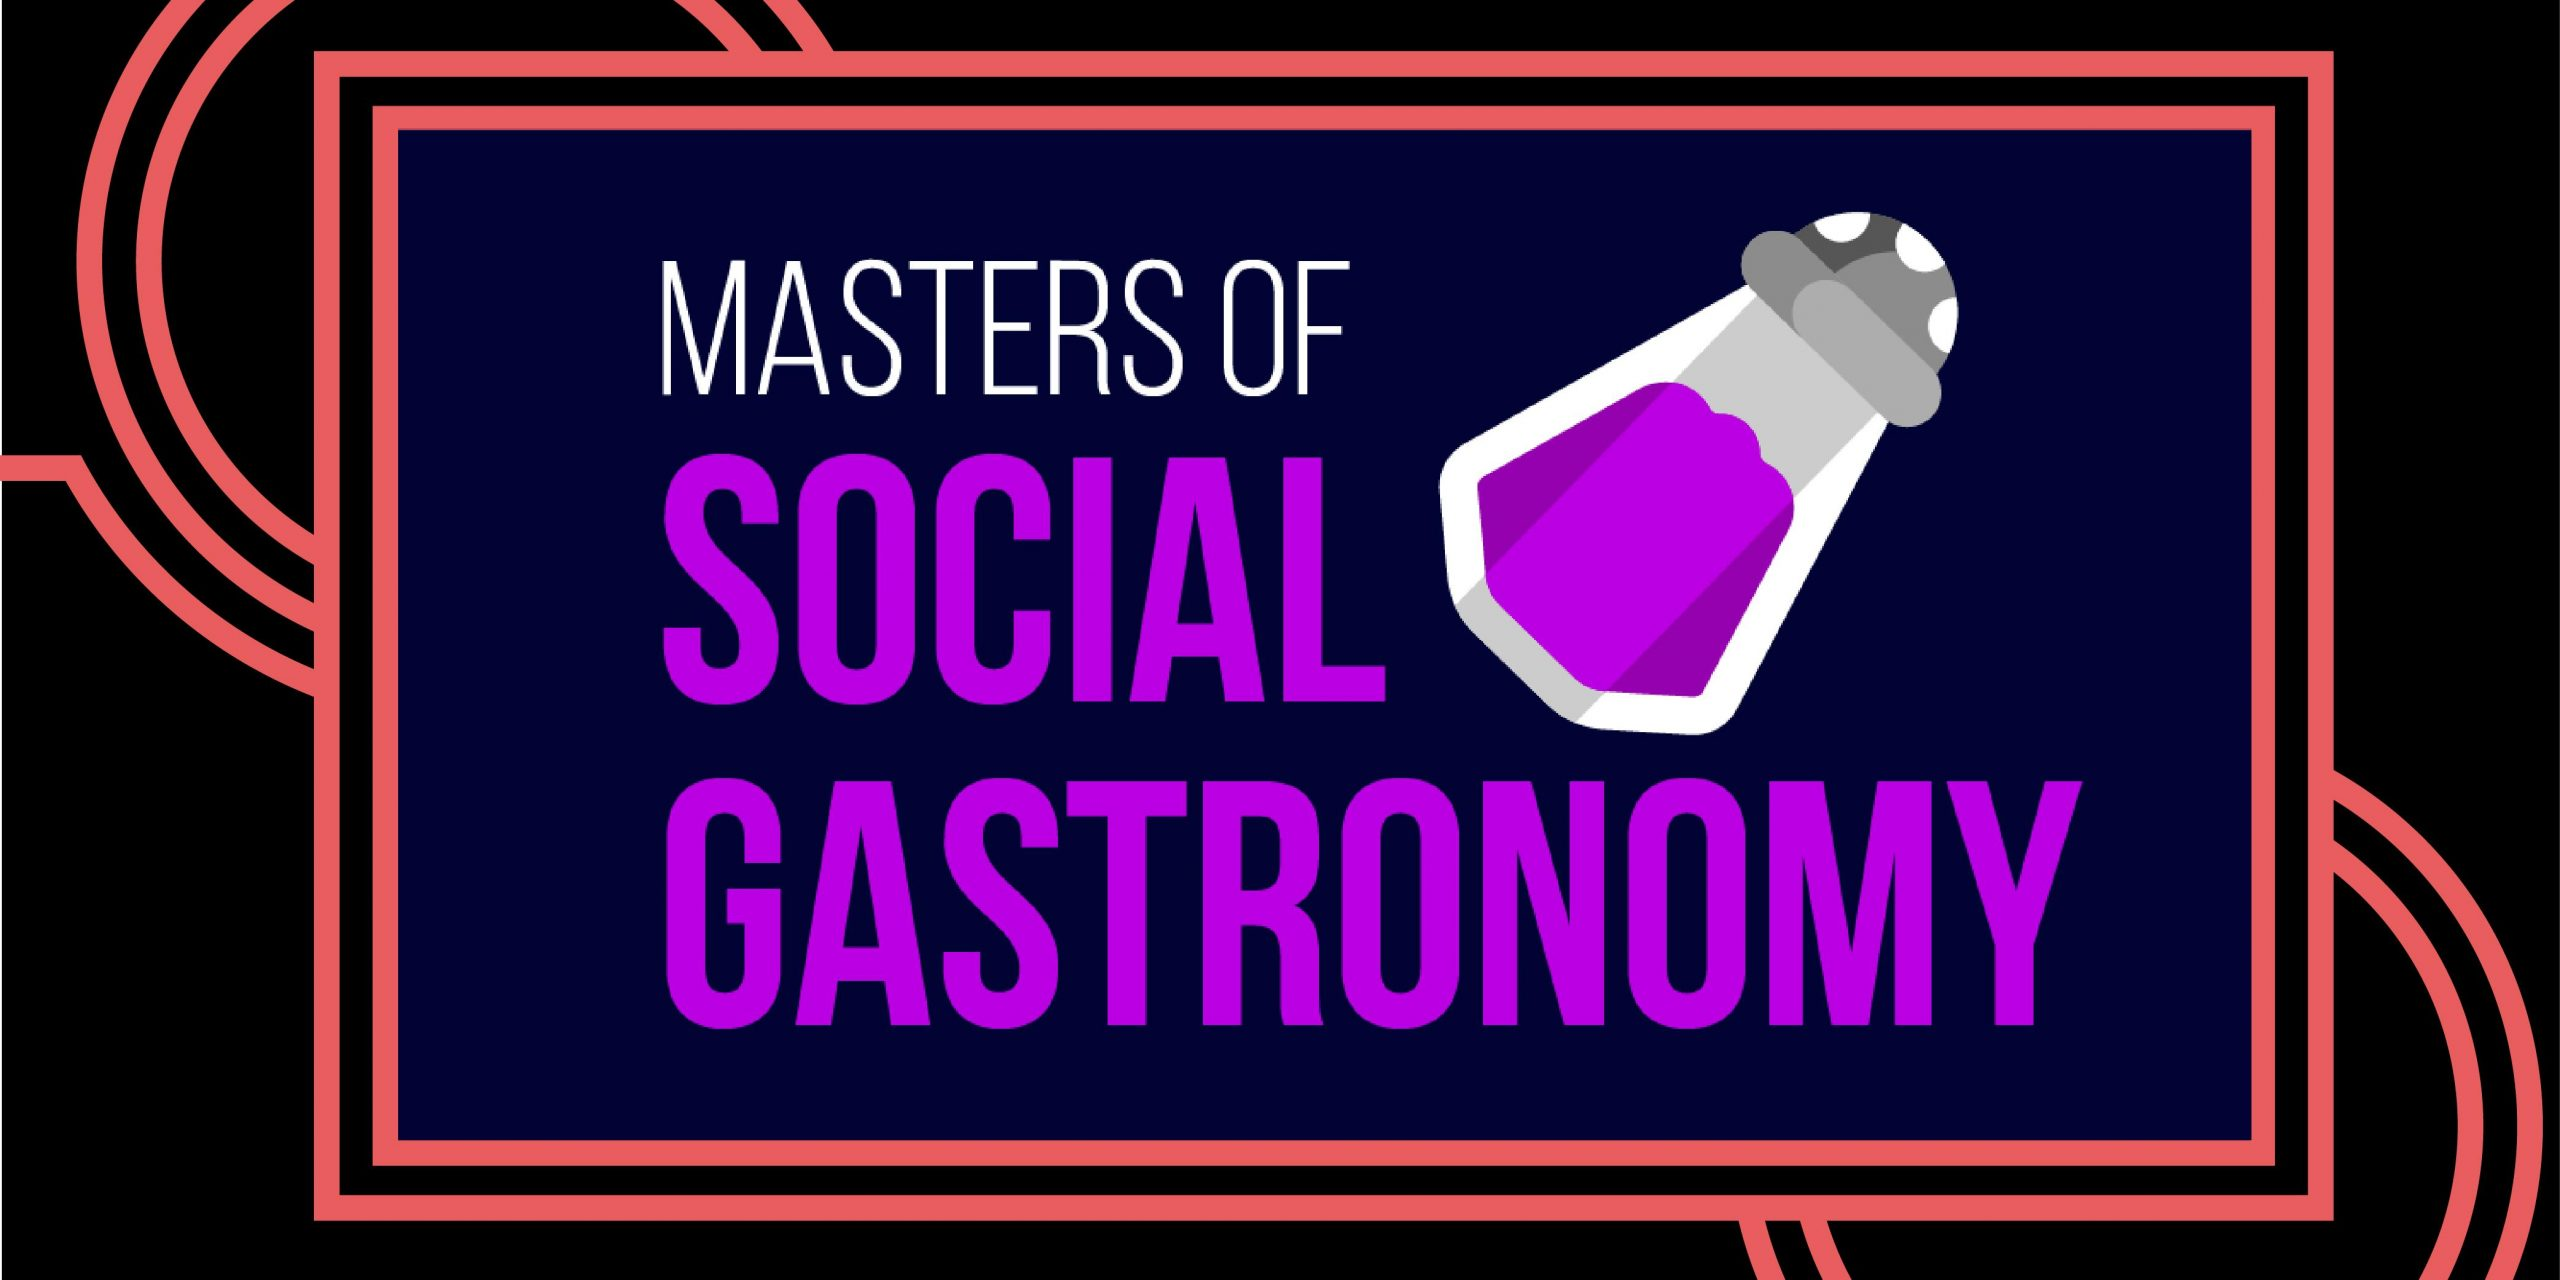 2209 image scaled - Masters of Social Gastronomy: MSG's Very Big Podcast Launch Show!